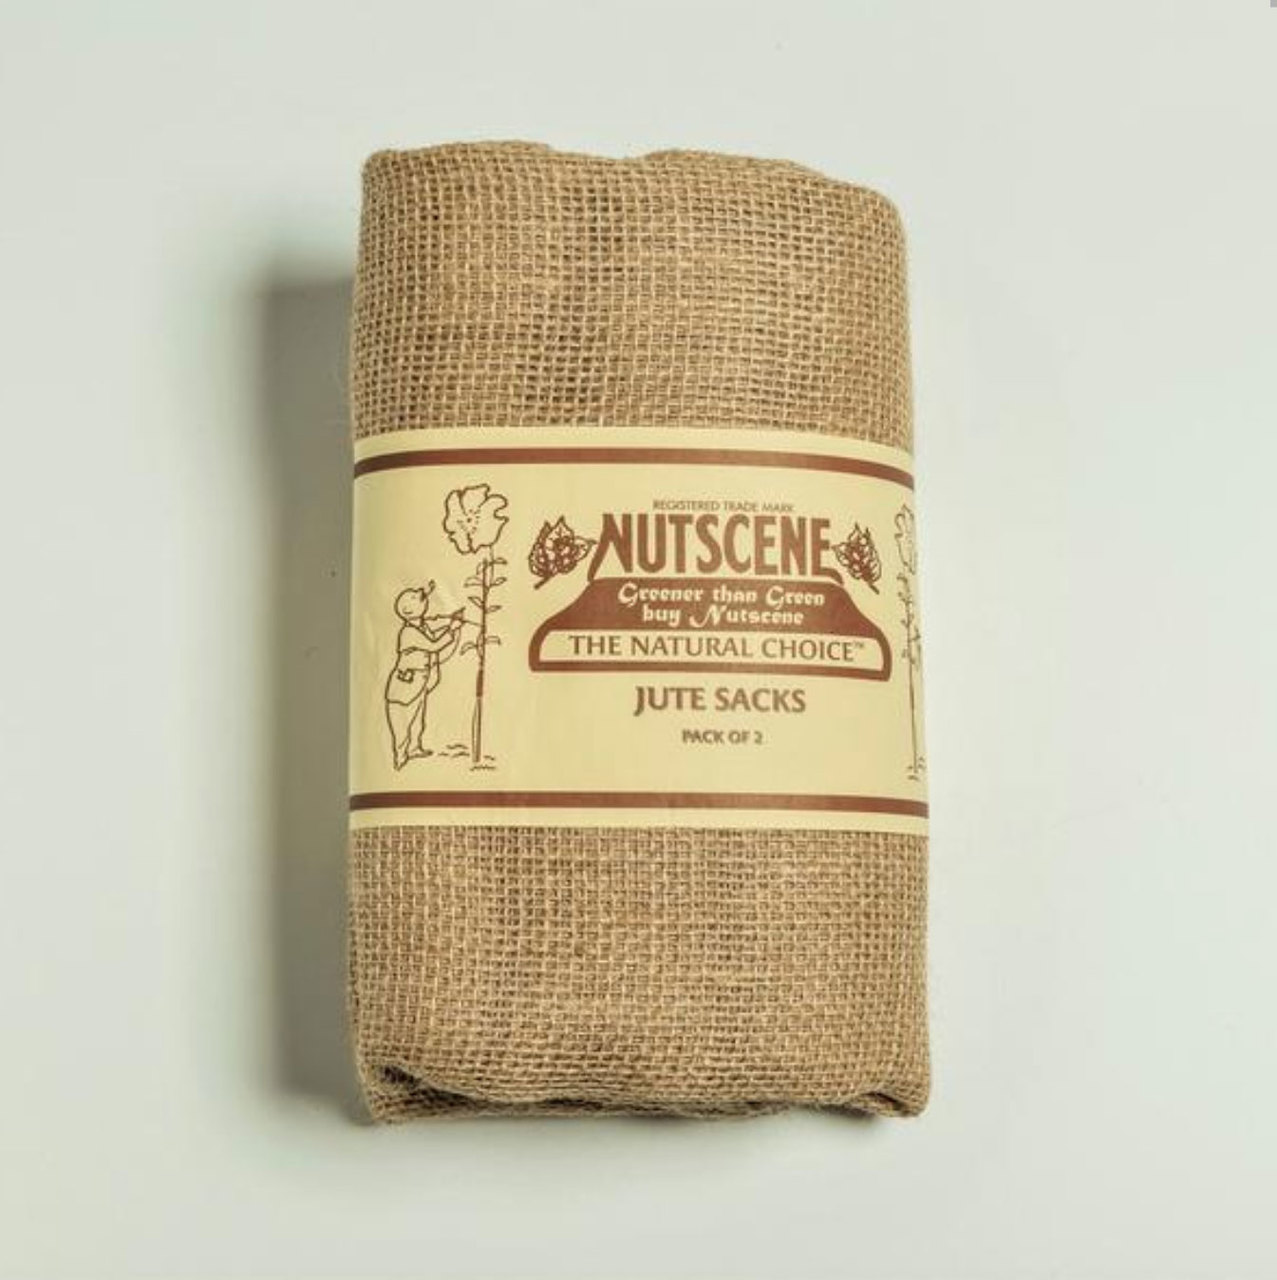 Traditional hessian sacks have been utilised and appreciated by gardeners for many years.  Suitable for carrying and storing vegetables such as your potatoes or collecting garden waste - and don't forget the traditional sack race!  Size is 83cm x 50cm  (33 x 20 inches)  Sold in pairs.  Made from natural jute fibres - these sacks are safe to compost and are biodegradable.